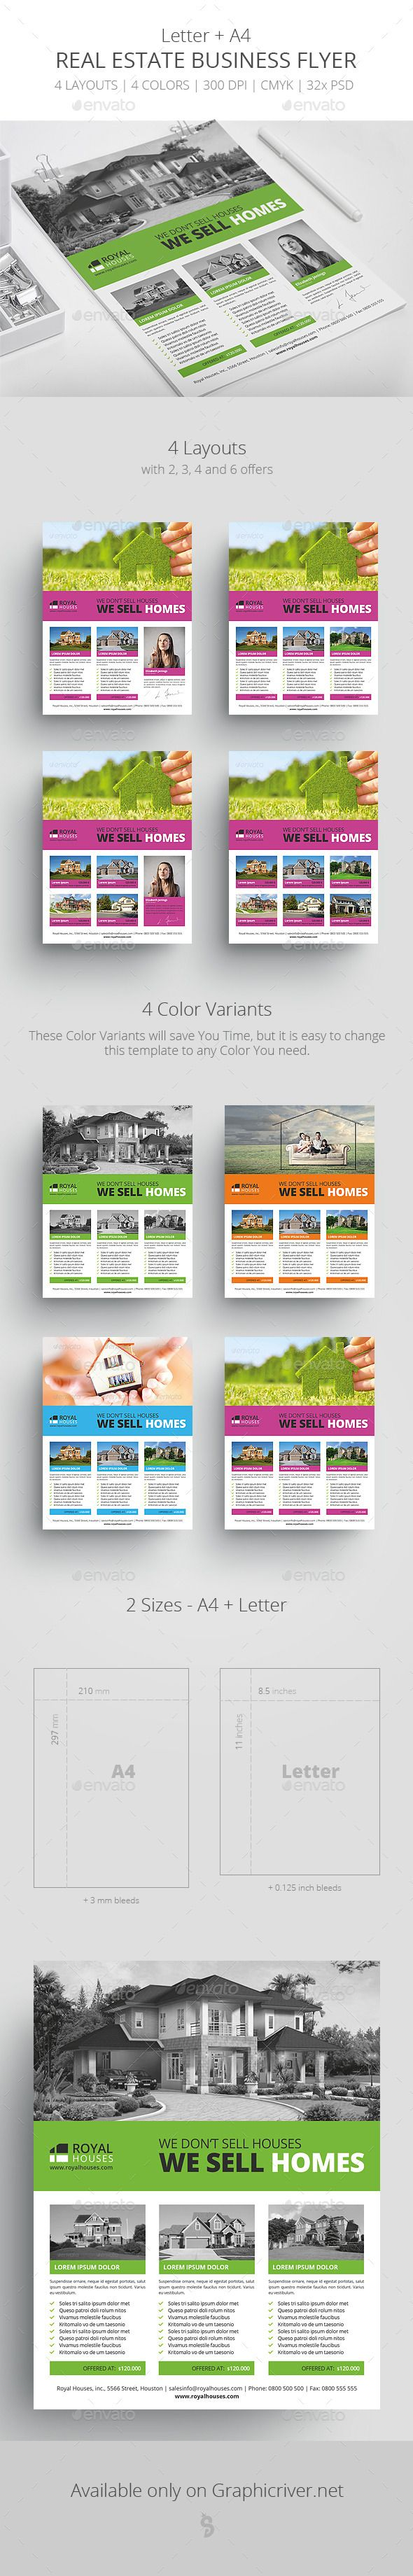 best images about flyer business flyer templates real estate business flyer template 1